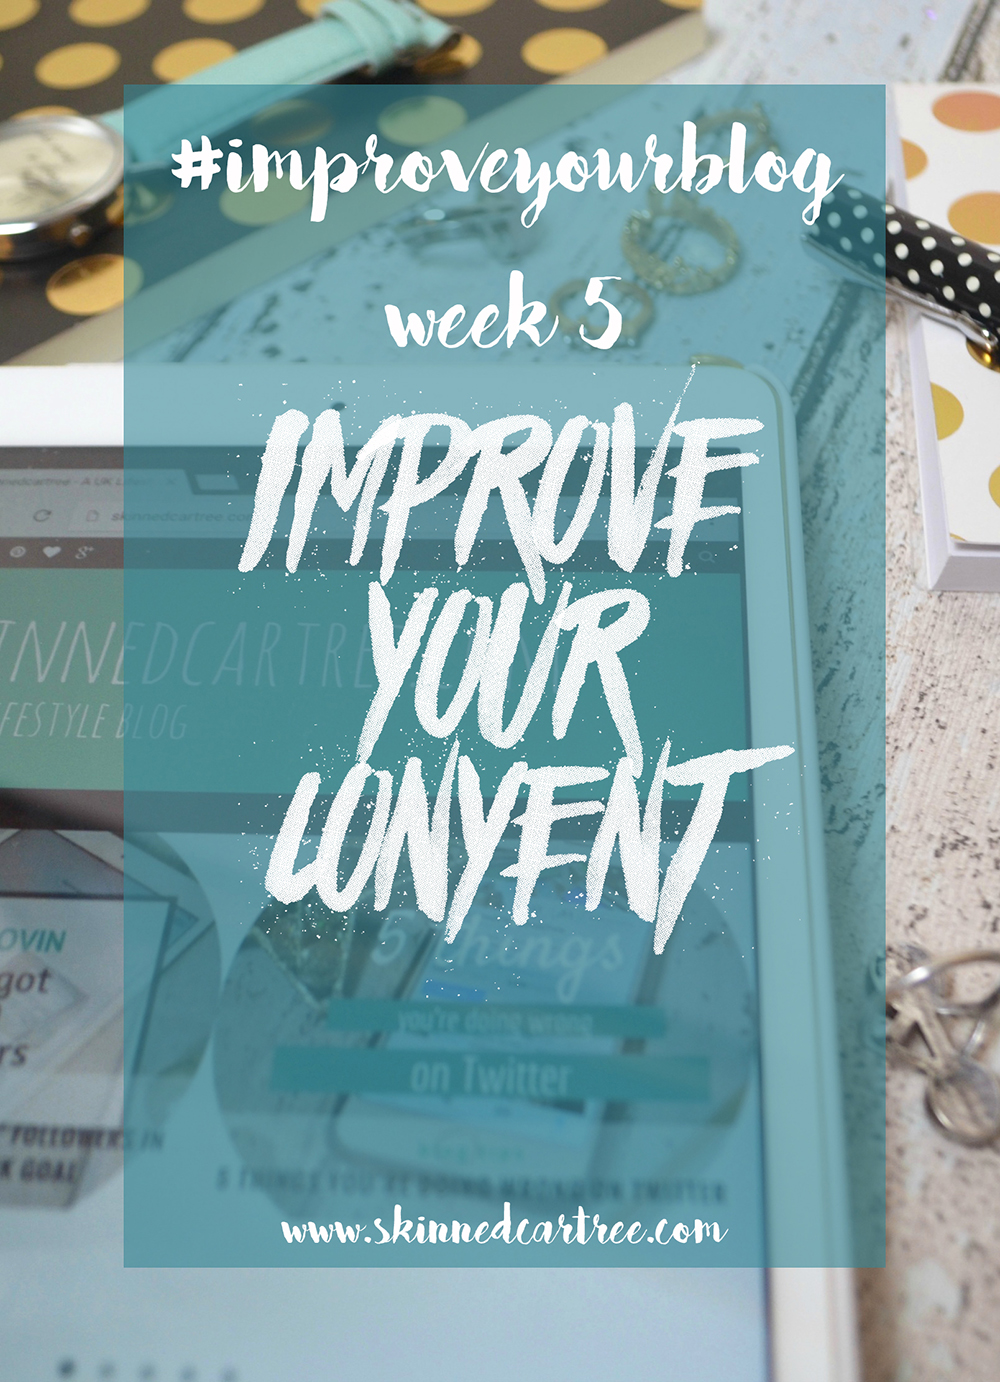 week 5 of the 8 week blog course #improveyourblog, this week we talk about how to improve your content and writing